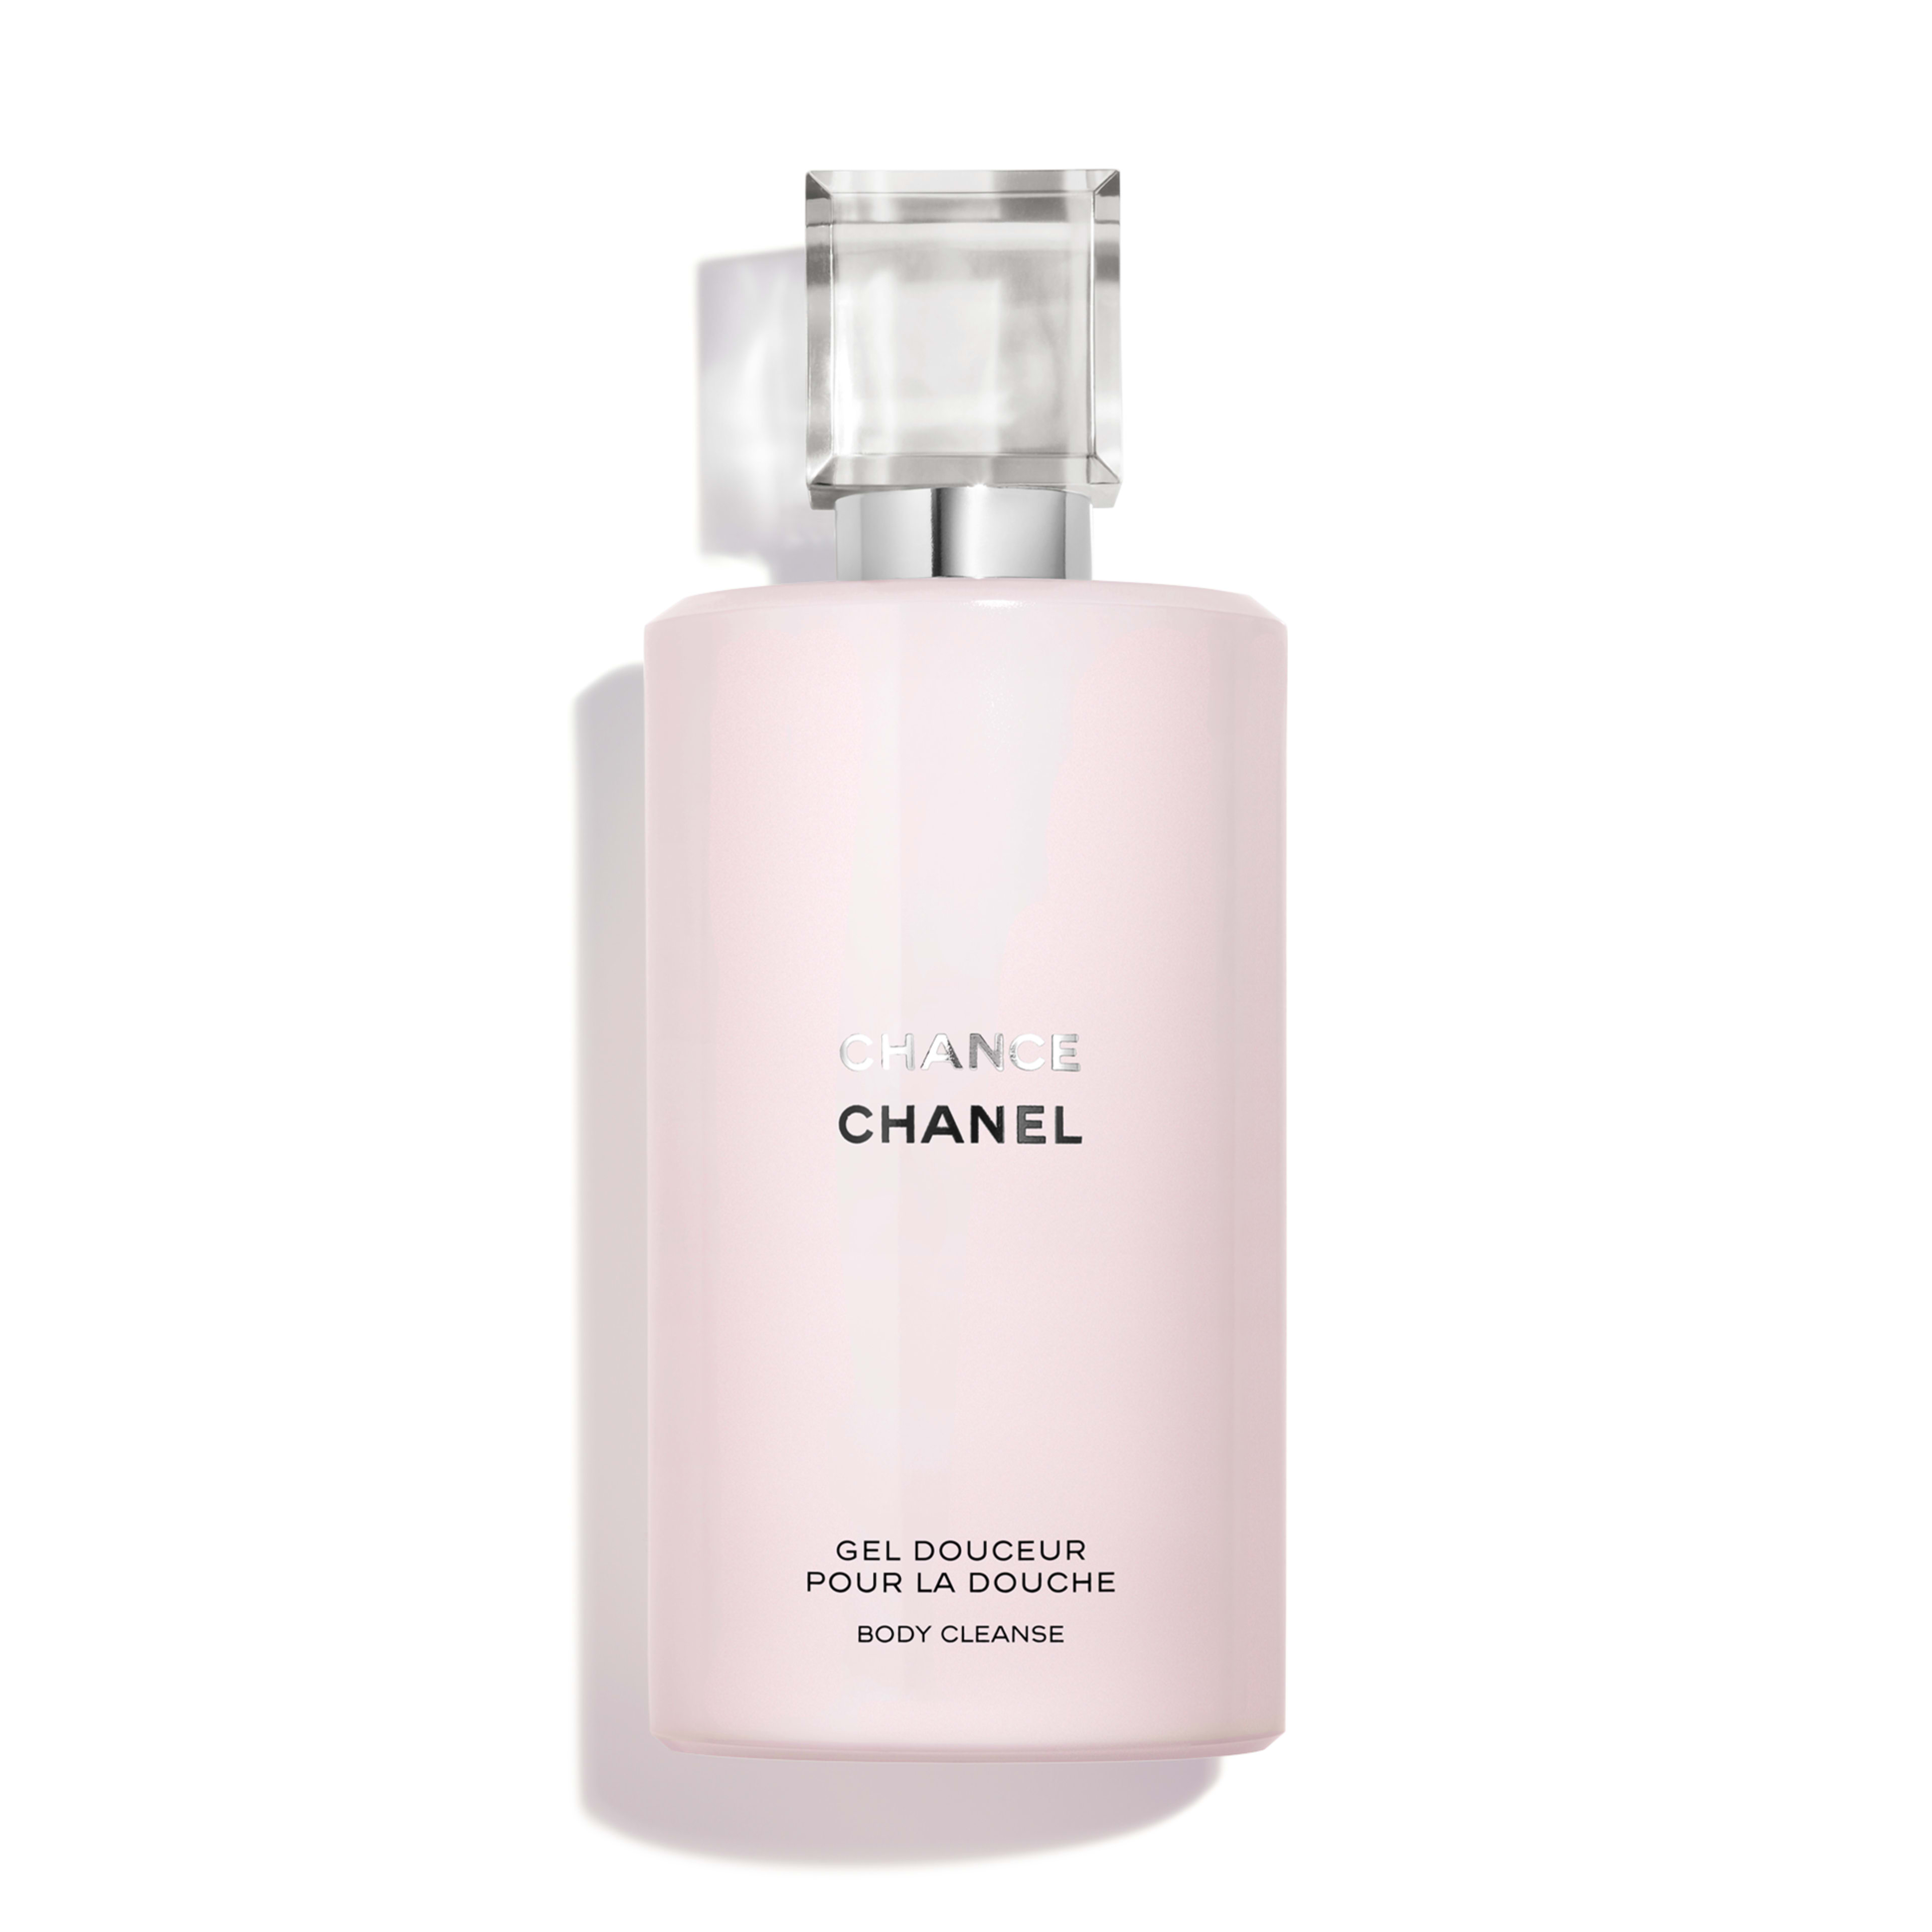 CHANCE - fragrance - 200ml - Default view